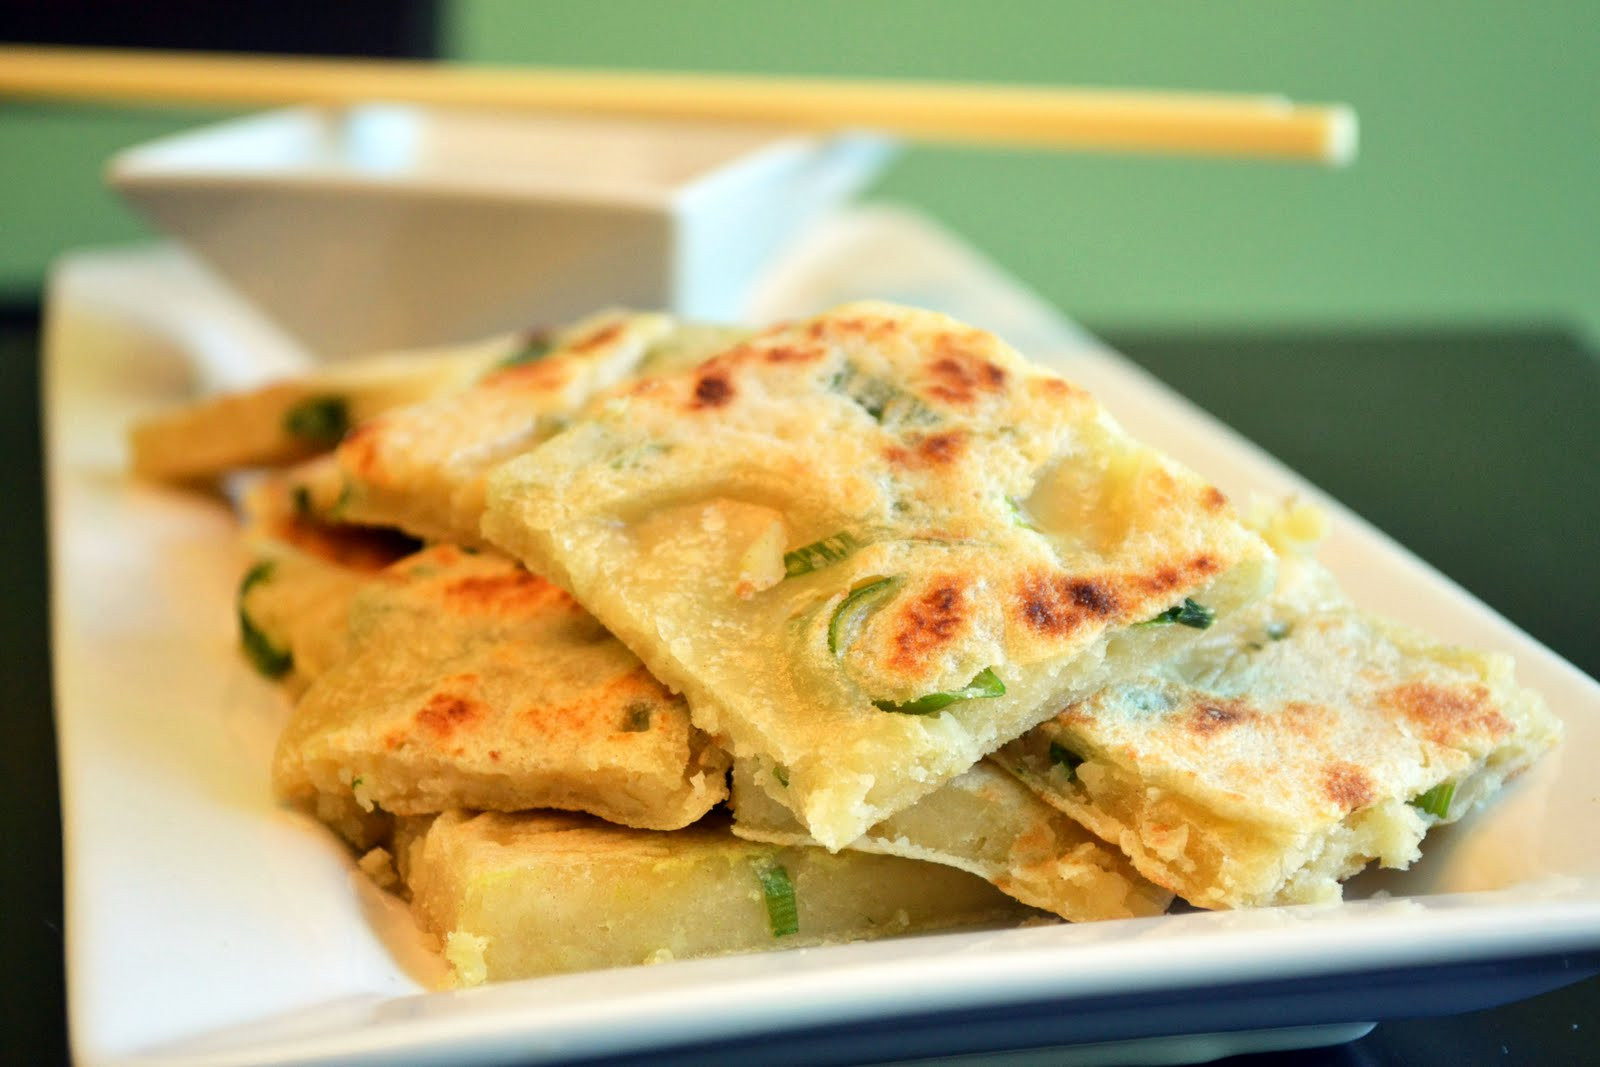 Scallion Pancakes (Cong You Bing)